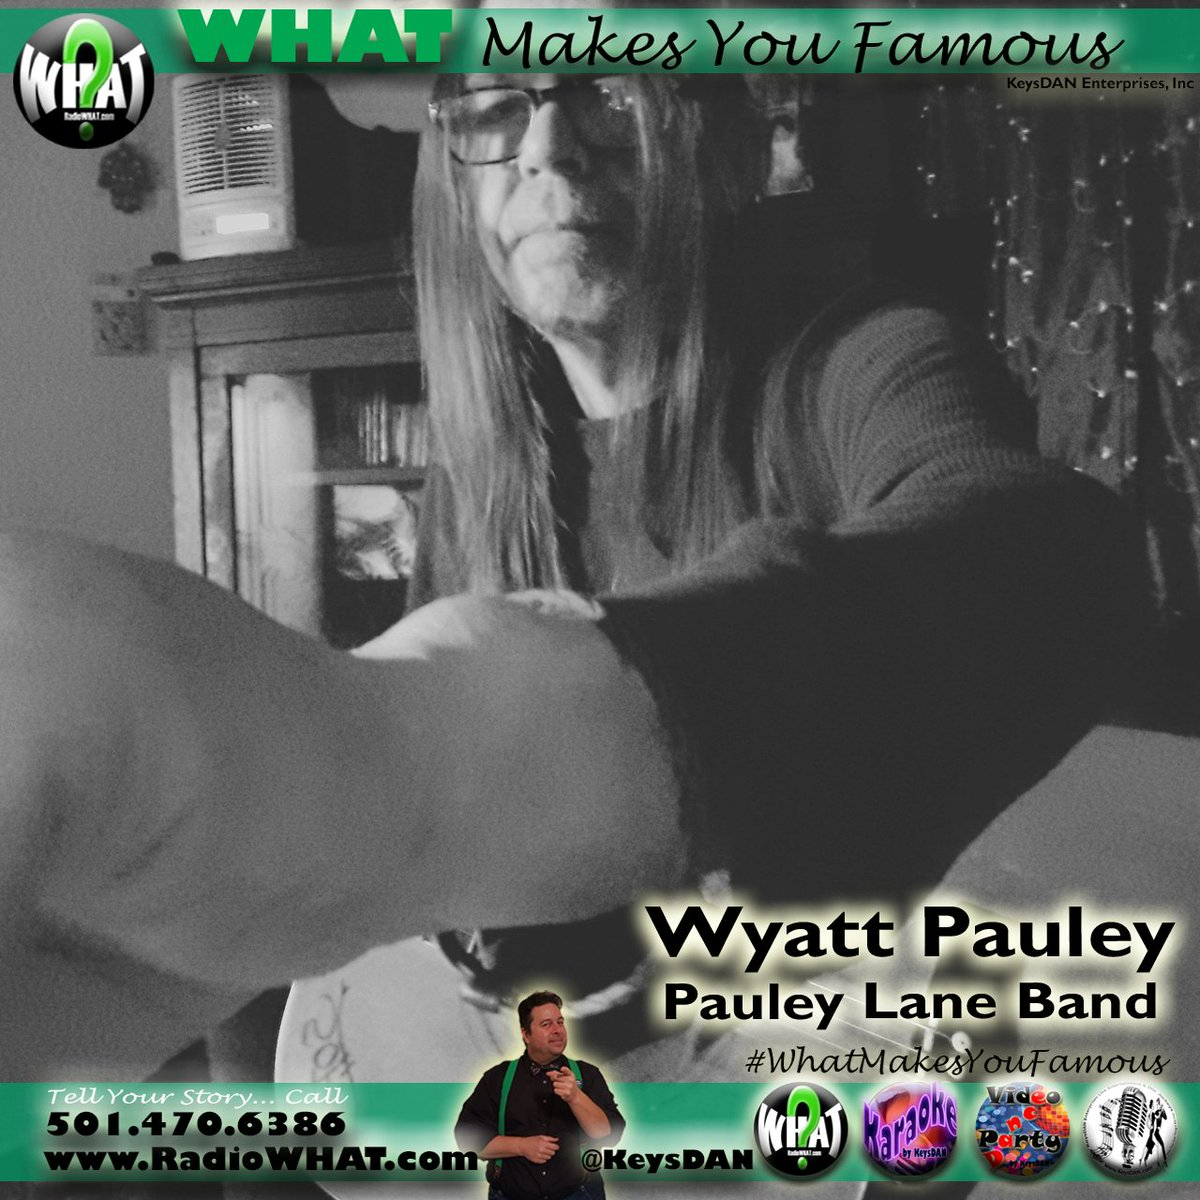 2020-07-06 Wyatt Pauley Pauley Lane Band What Makes You Famous #PODCAST #WhatMakesYouFamous @KeysDAN @wyattpauley @pauleylaneband @inexrecords https://anchor.fm/keysdanshow/episodes/Wyatt-Pauley-Pauley-Lane-Band-What-Makes-You-Famous-PODCAST-WhatMakesYouFamous-KeysDAN-egdhj1 … #guitars #guitar #guitarist #music #guitarplayer #guitarporn #musician #guitarsolo #guitarsofinstagram pic.twitter.com/BYZUeEZZAF